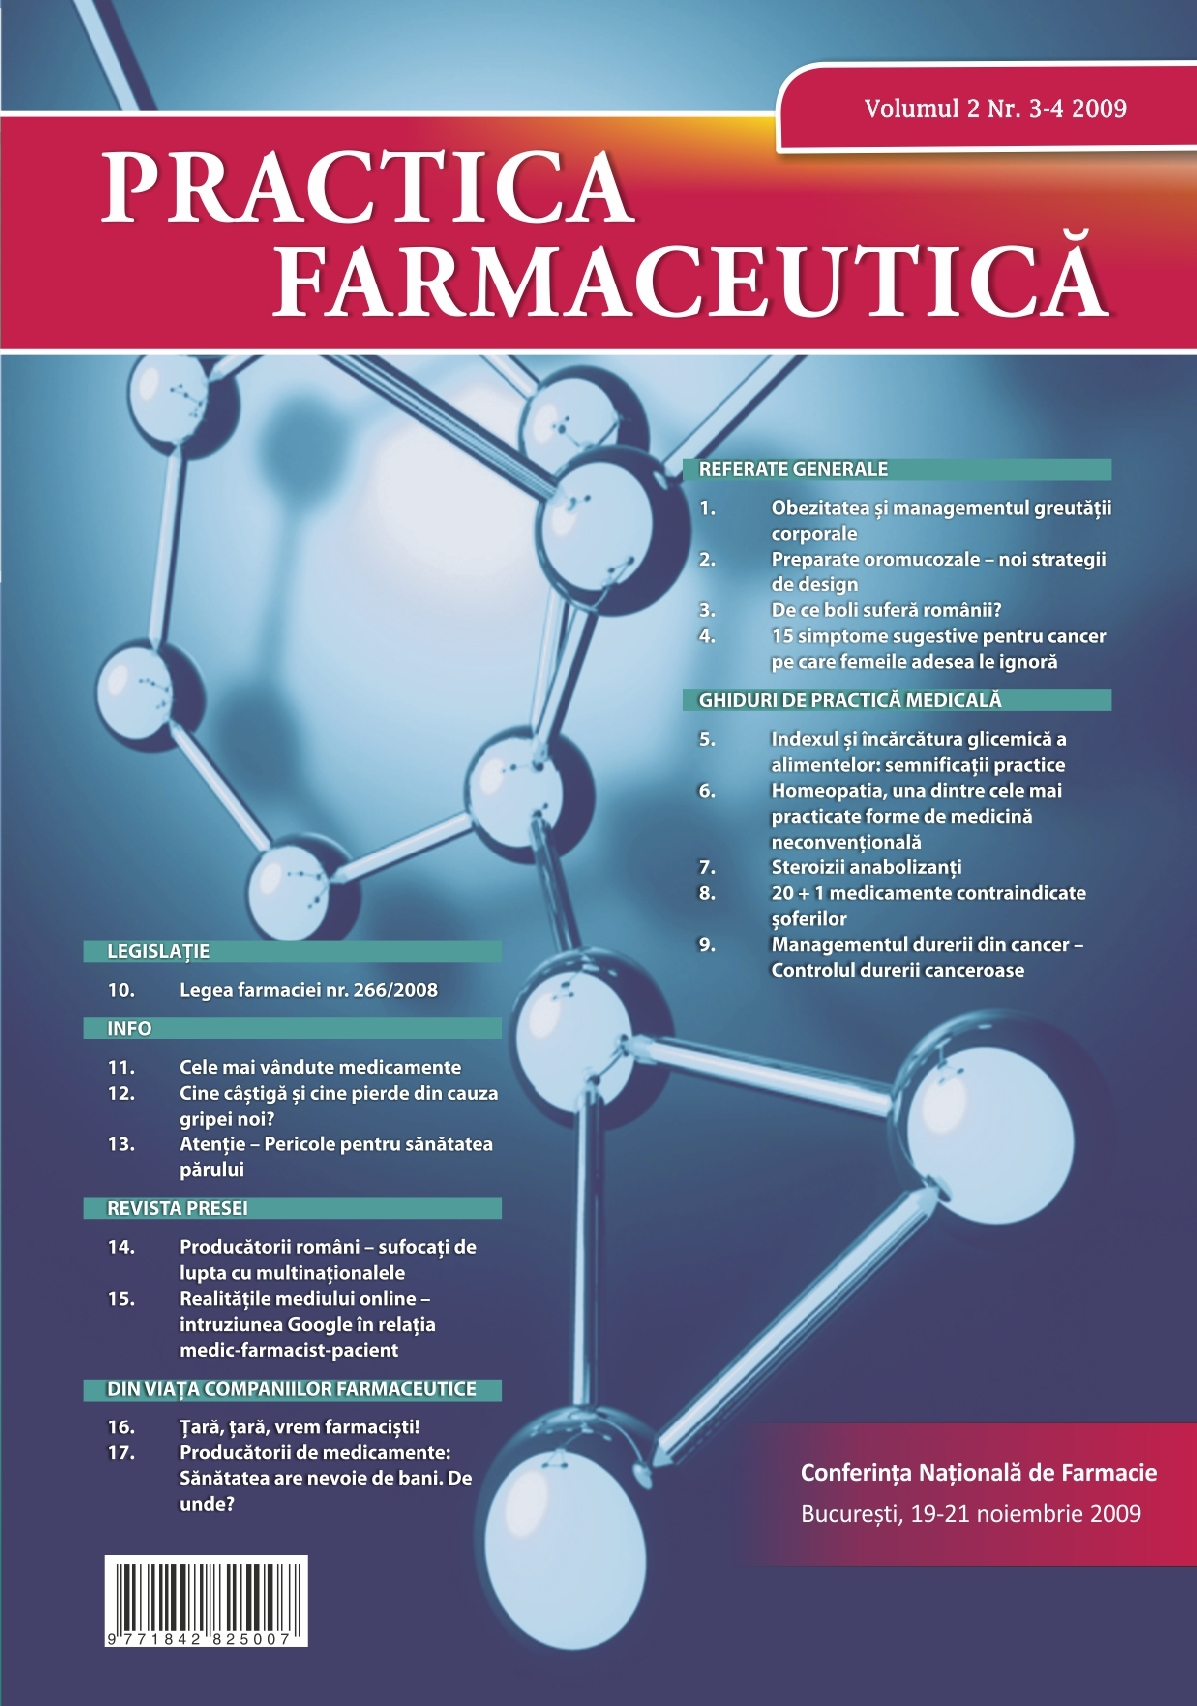 Revista Practica Farmaceutica, Vol. 2, Nr. 3-4, 2009